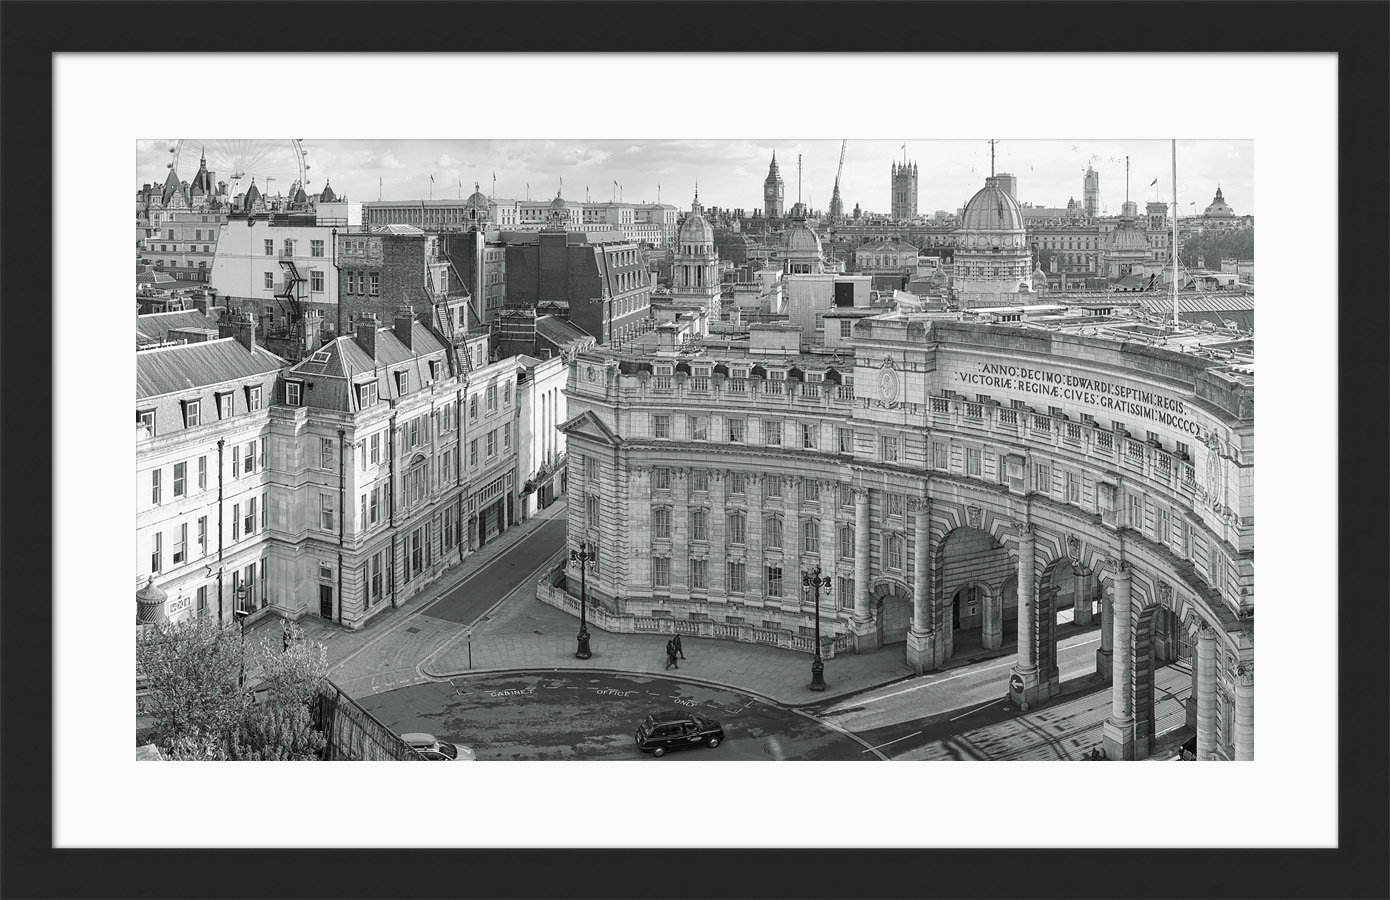 Admiralty Arch Day - Framed London Black & White Fine Art Photograph